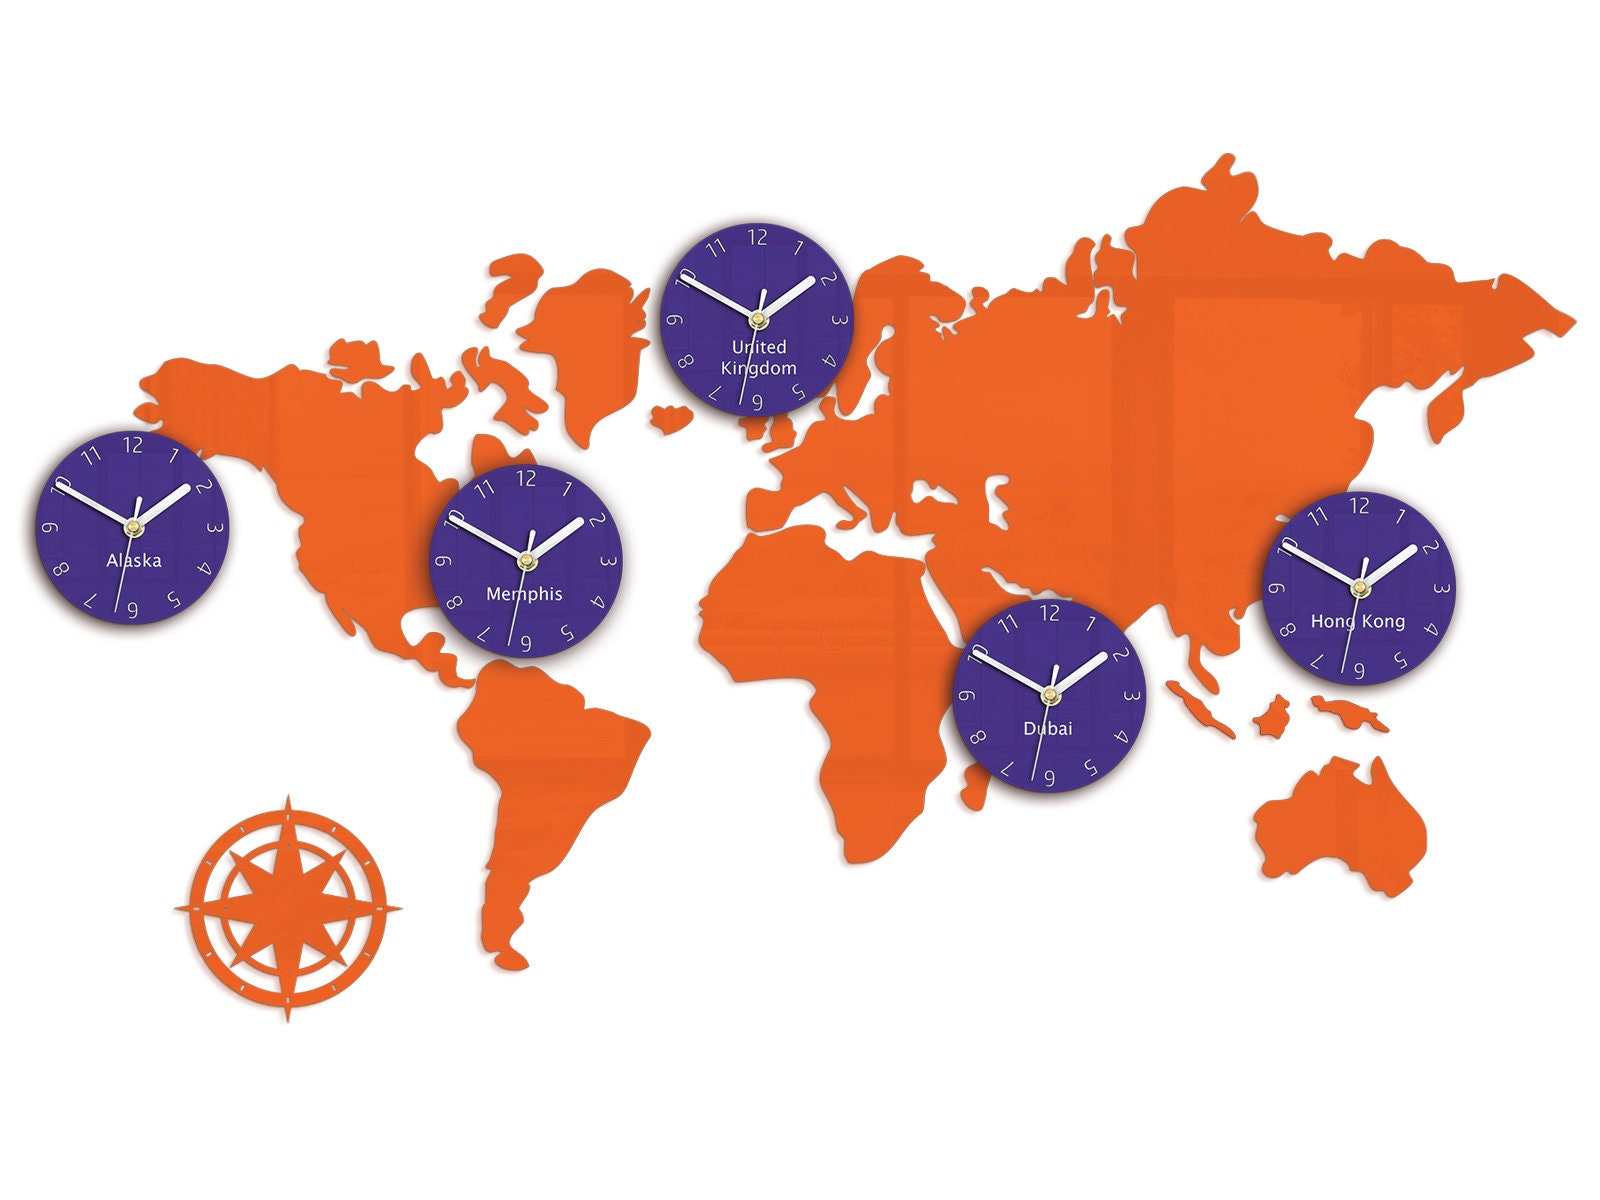 Large clock - Orange world map with 5 time zones: Hong Kong ... on russia on world map, philippines on world map, saudi arabia on world map, indonesia on world map, great britain on world map, europe map, spain on world map, cyprus on world map, malaysia on world map, solomon islands on world map, germany on world map, brazil on world map, china on world map, london united kingdom map, sweden on world map, india on world map, france on world map, italy on world map, belgium on world map, netherlands on world map,